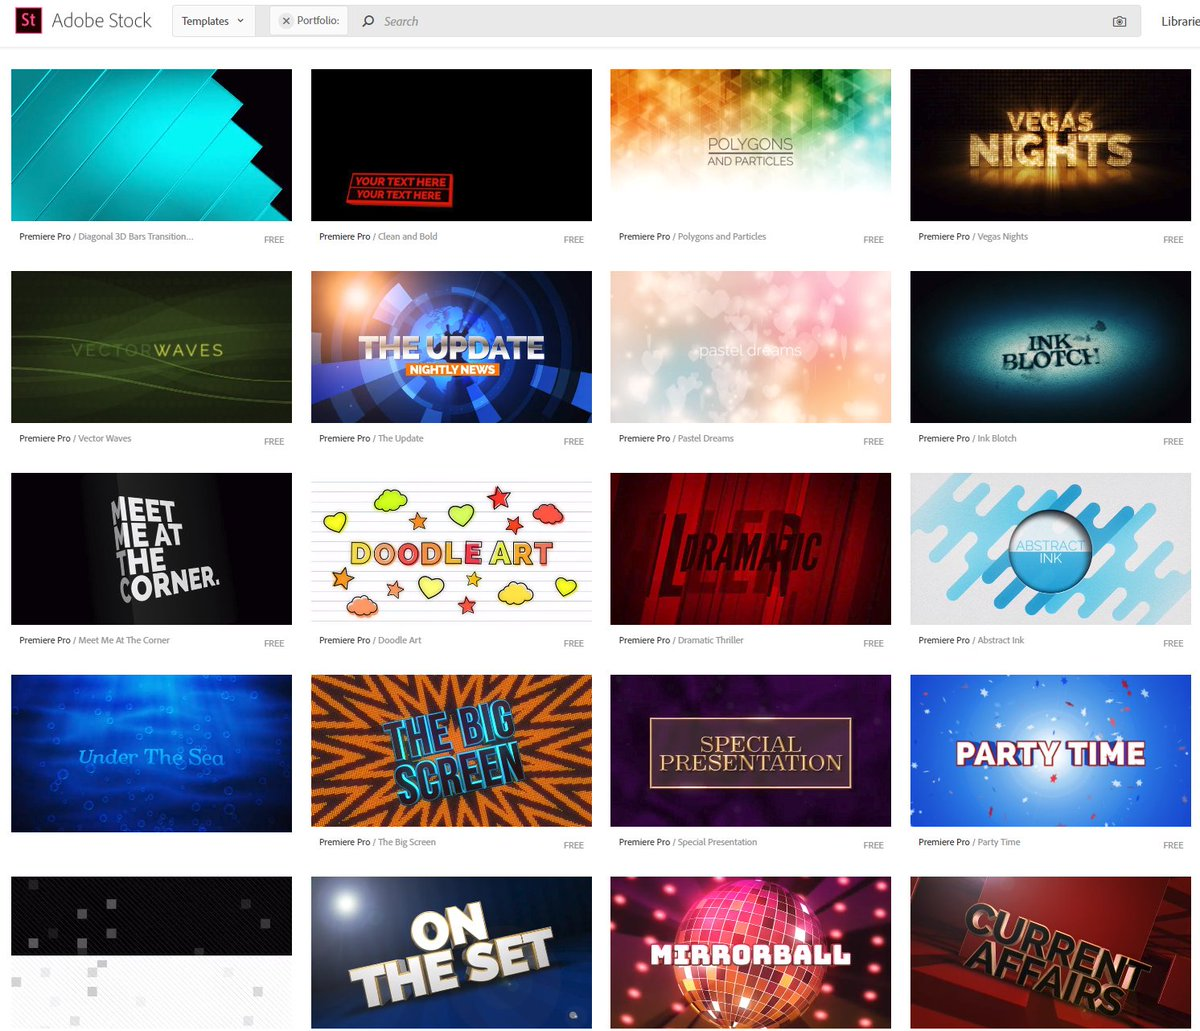 john dickinson on twitter premierepro i created 60 motion graphics templates recently which are now available for free on adobestock - Free Motion Graphics Templates